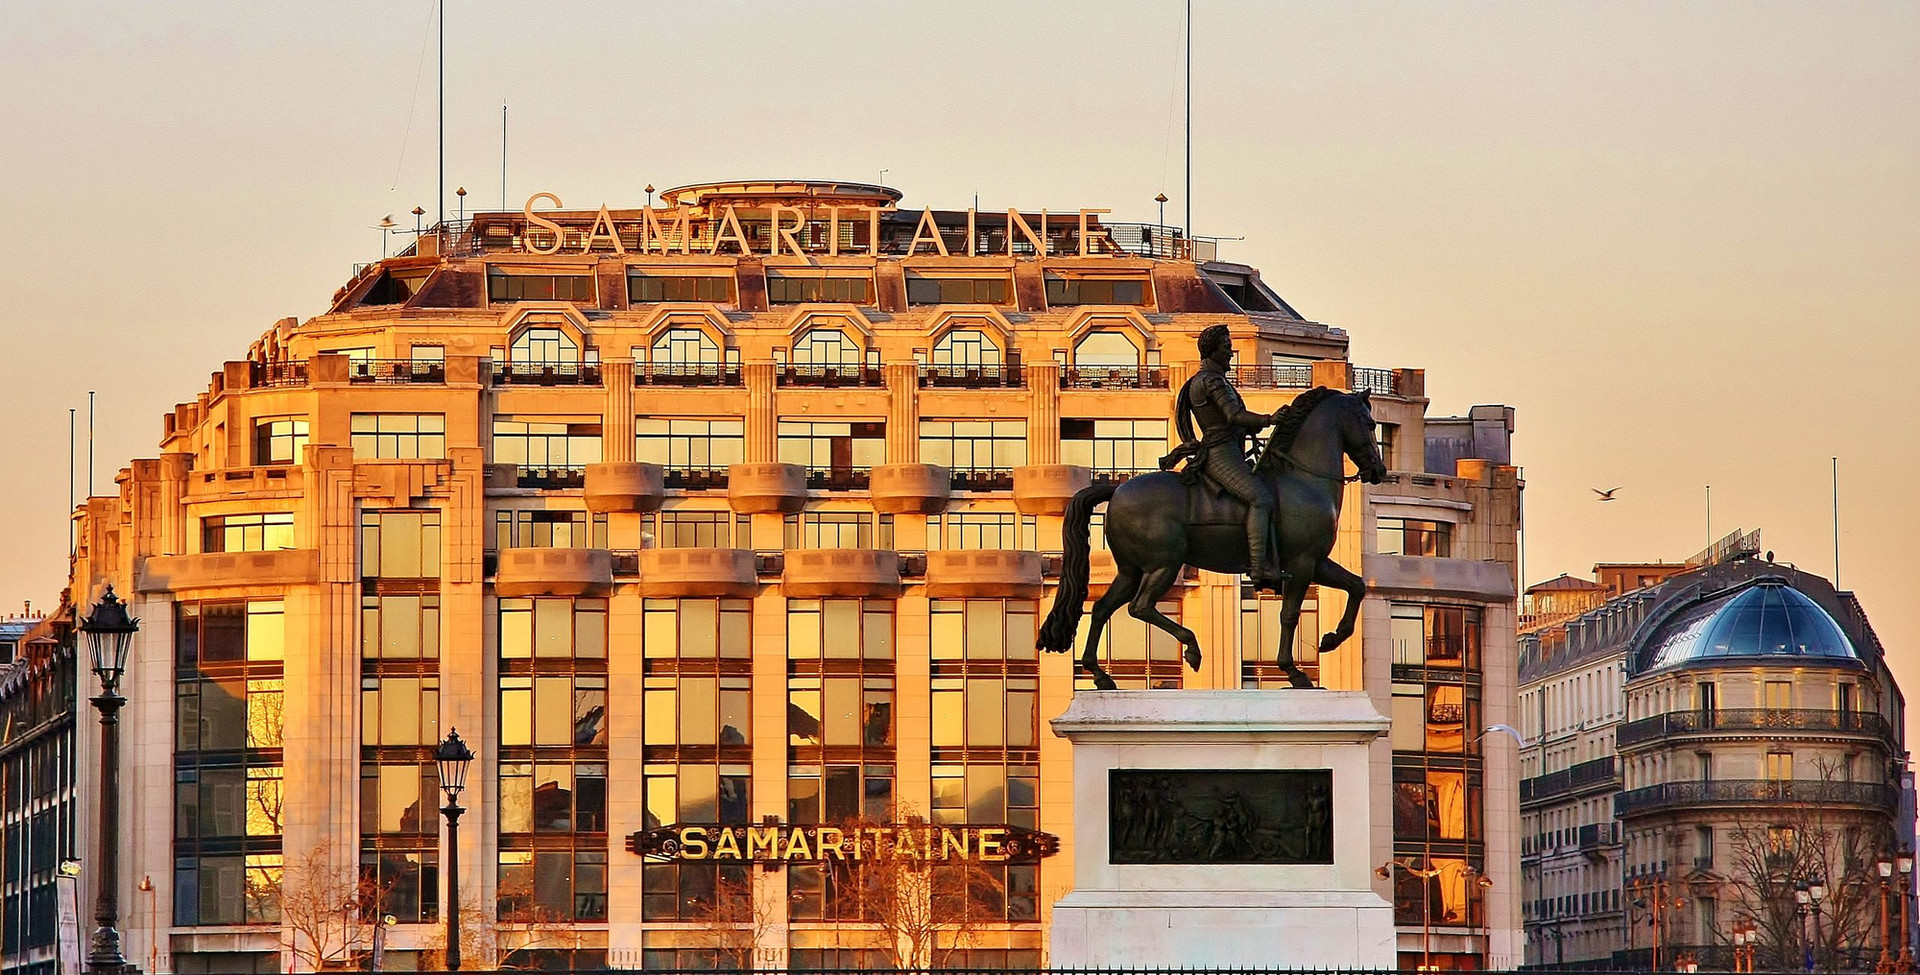 La_Samaritaine_and_Statue_of_Henri_IV_2.